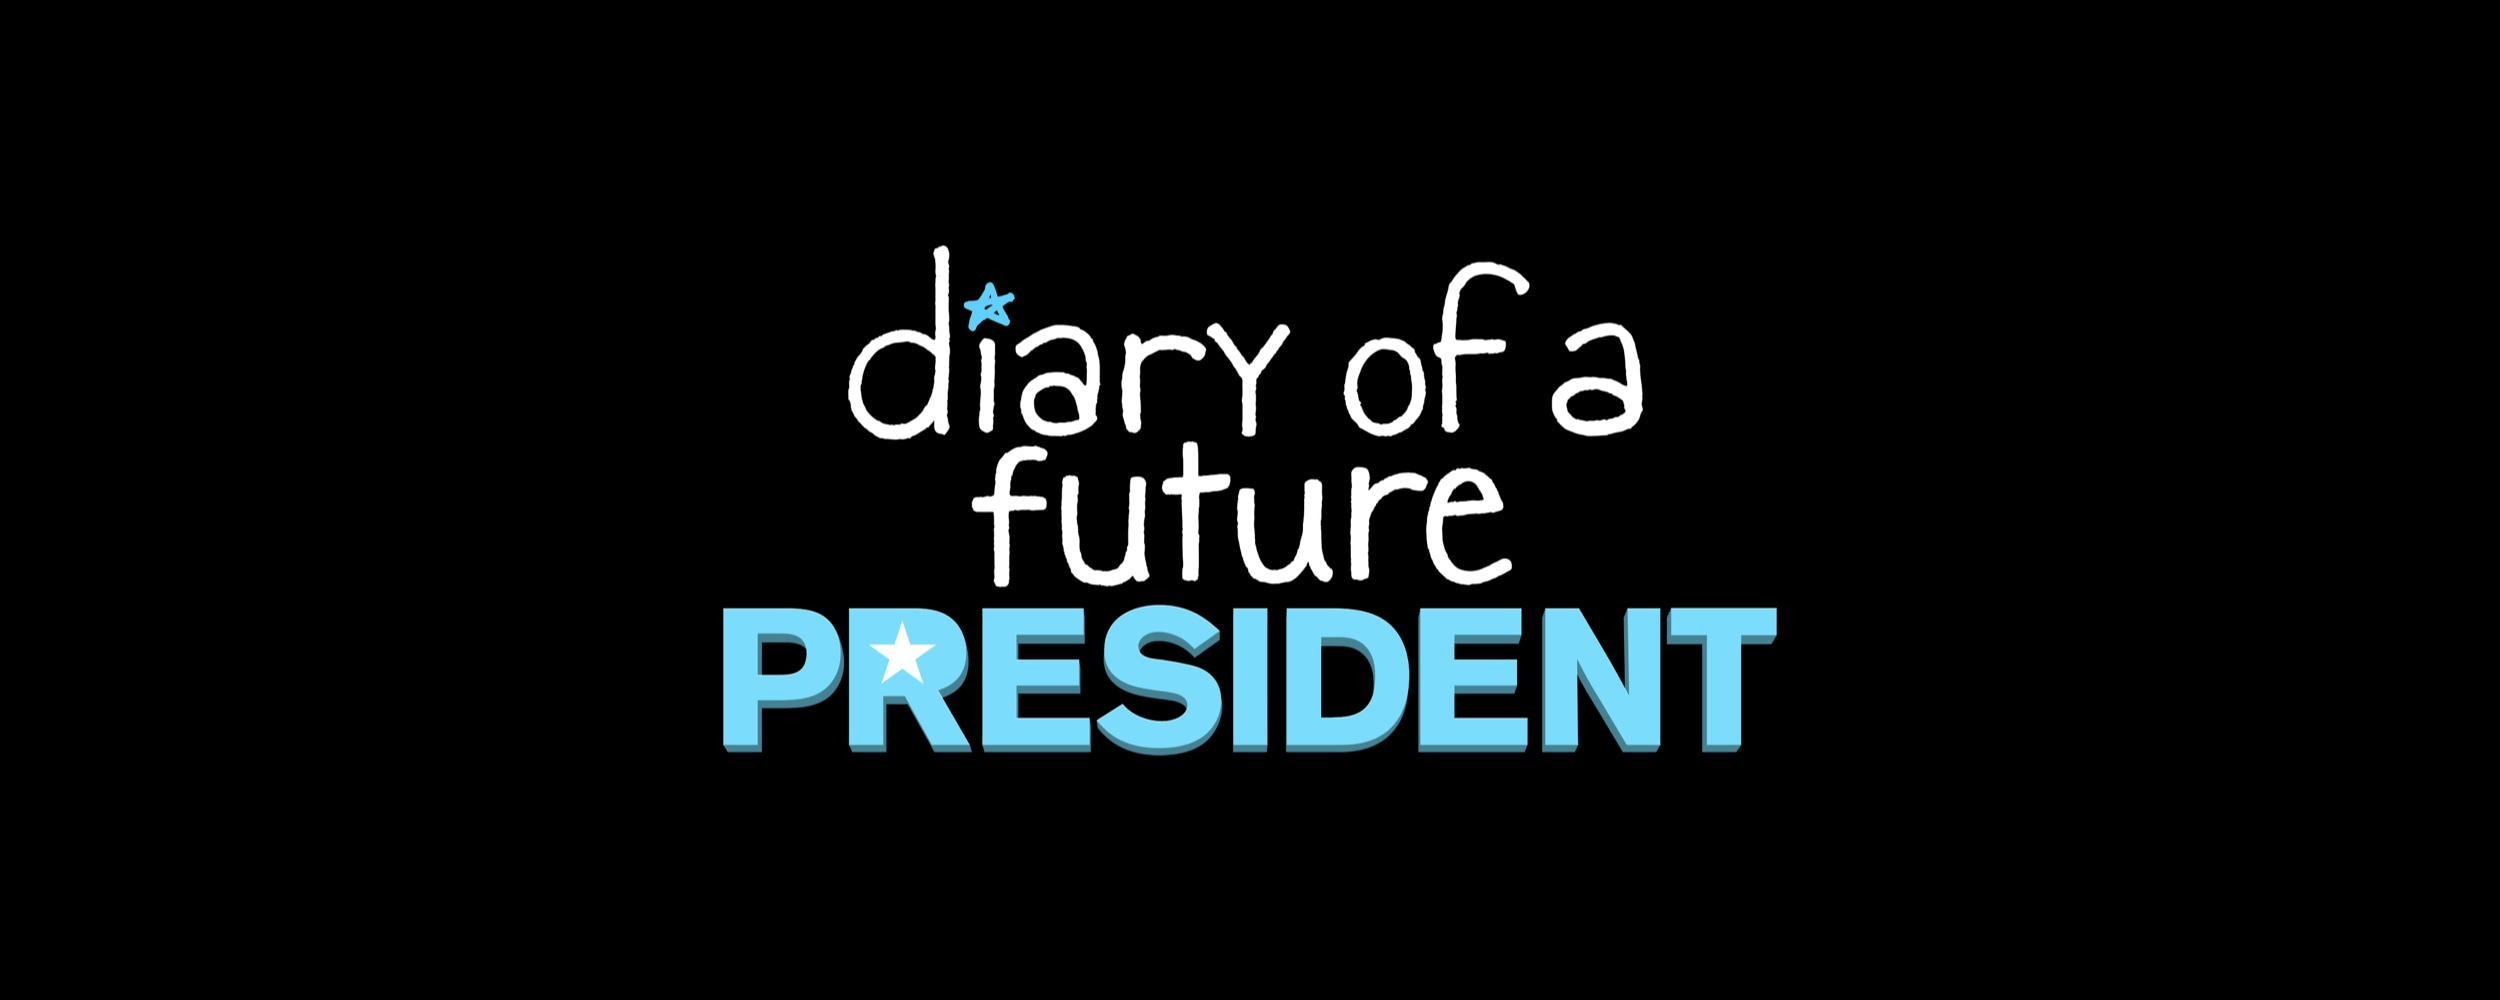 Diary of a Future President Premieres Jan. 17